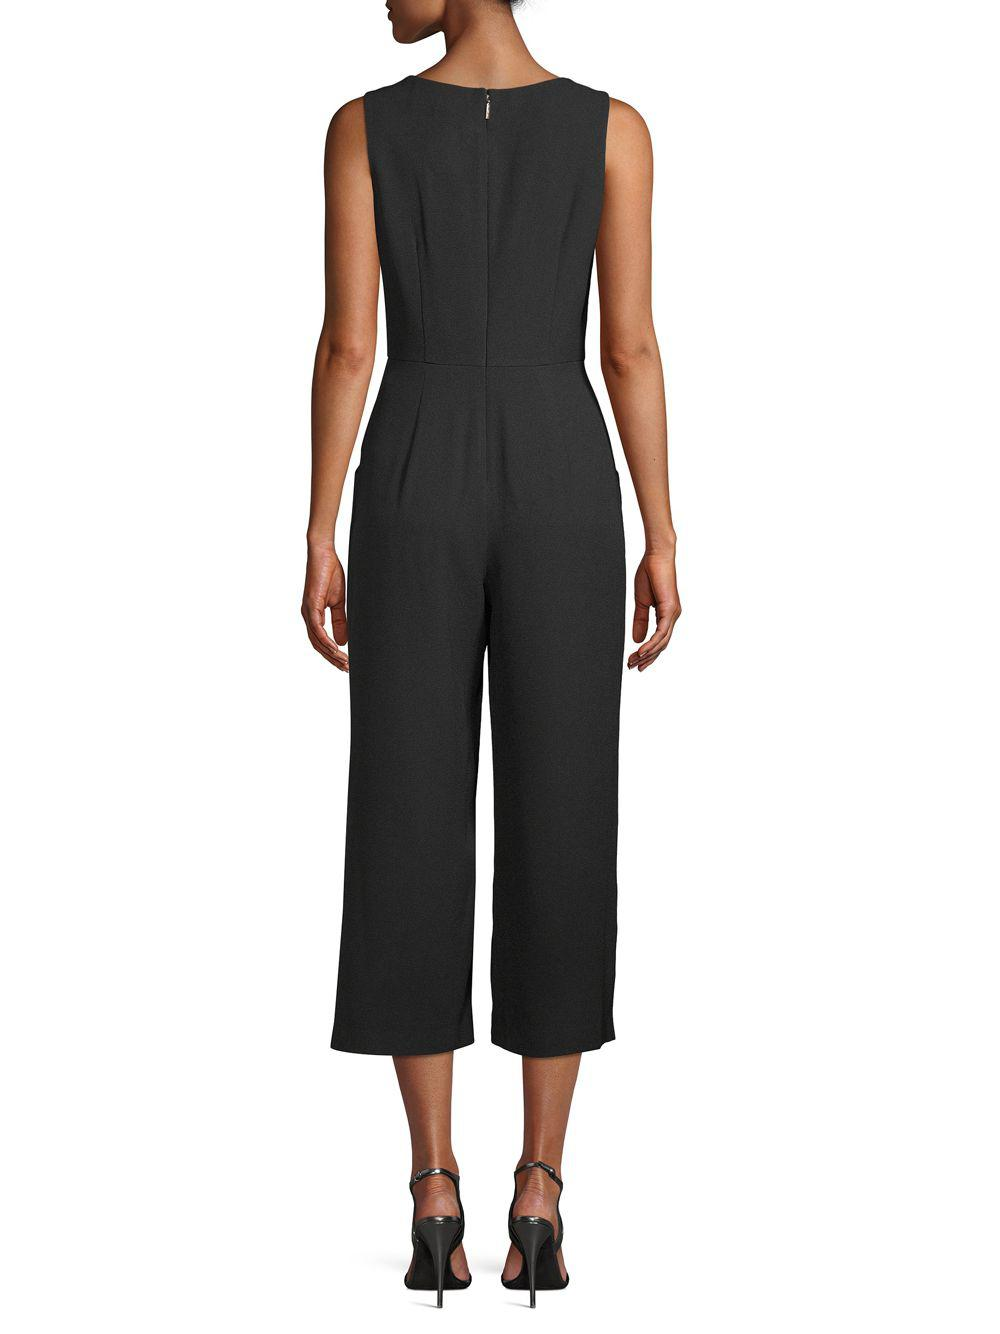 1ae37721fe0 Karl Lagerfeld - Black V-neck Sleeveless Jumpsuit - Lyst. View fullscreen